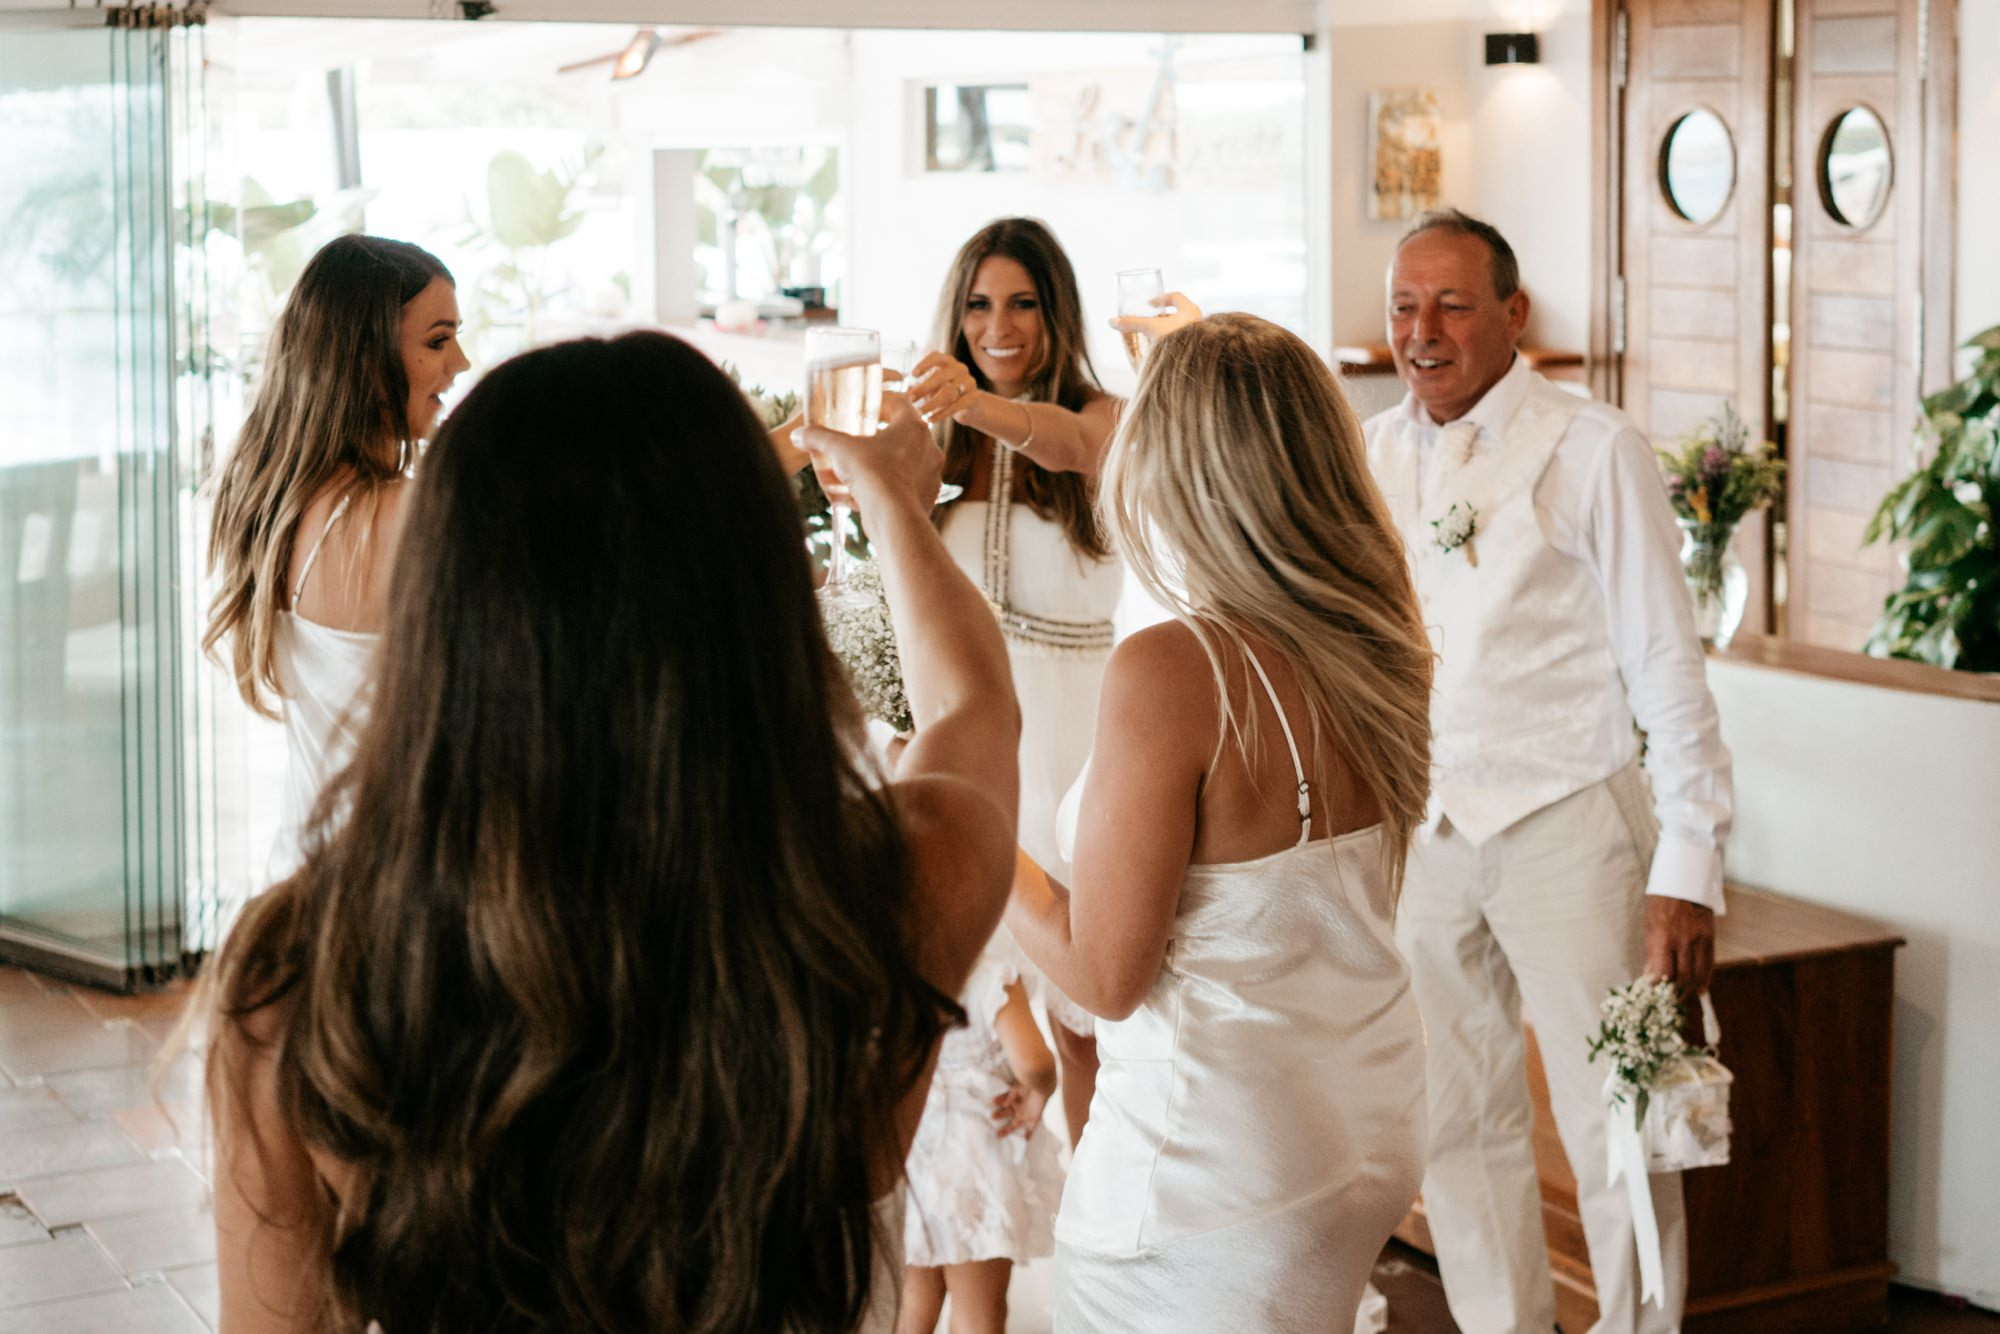 natural wedding photo destination la escollera ibiza 0048 1